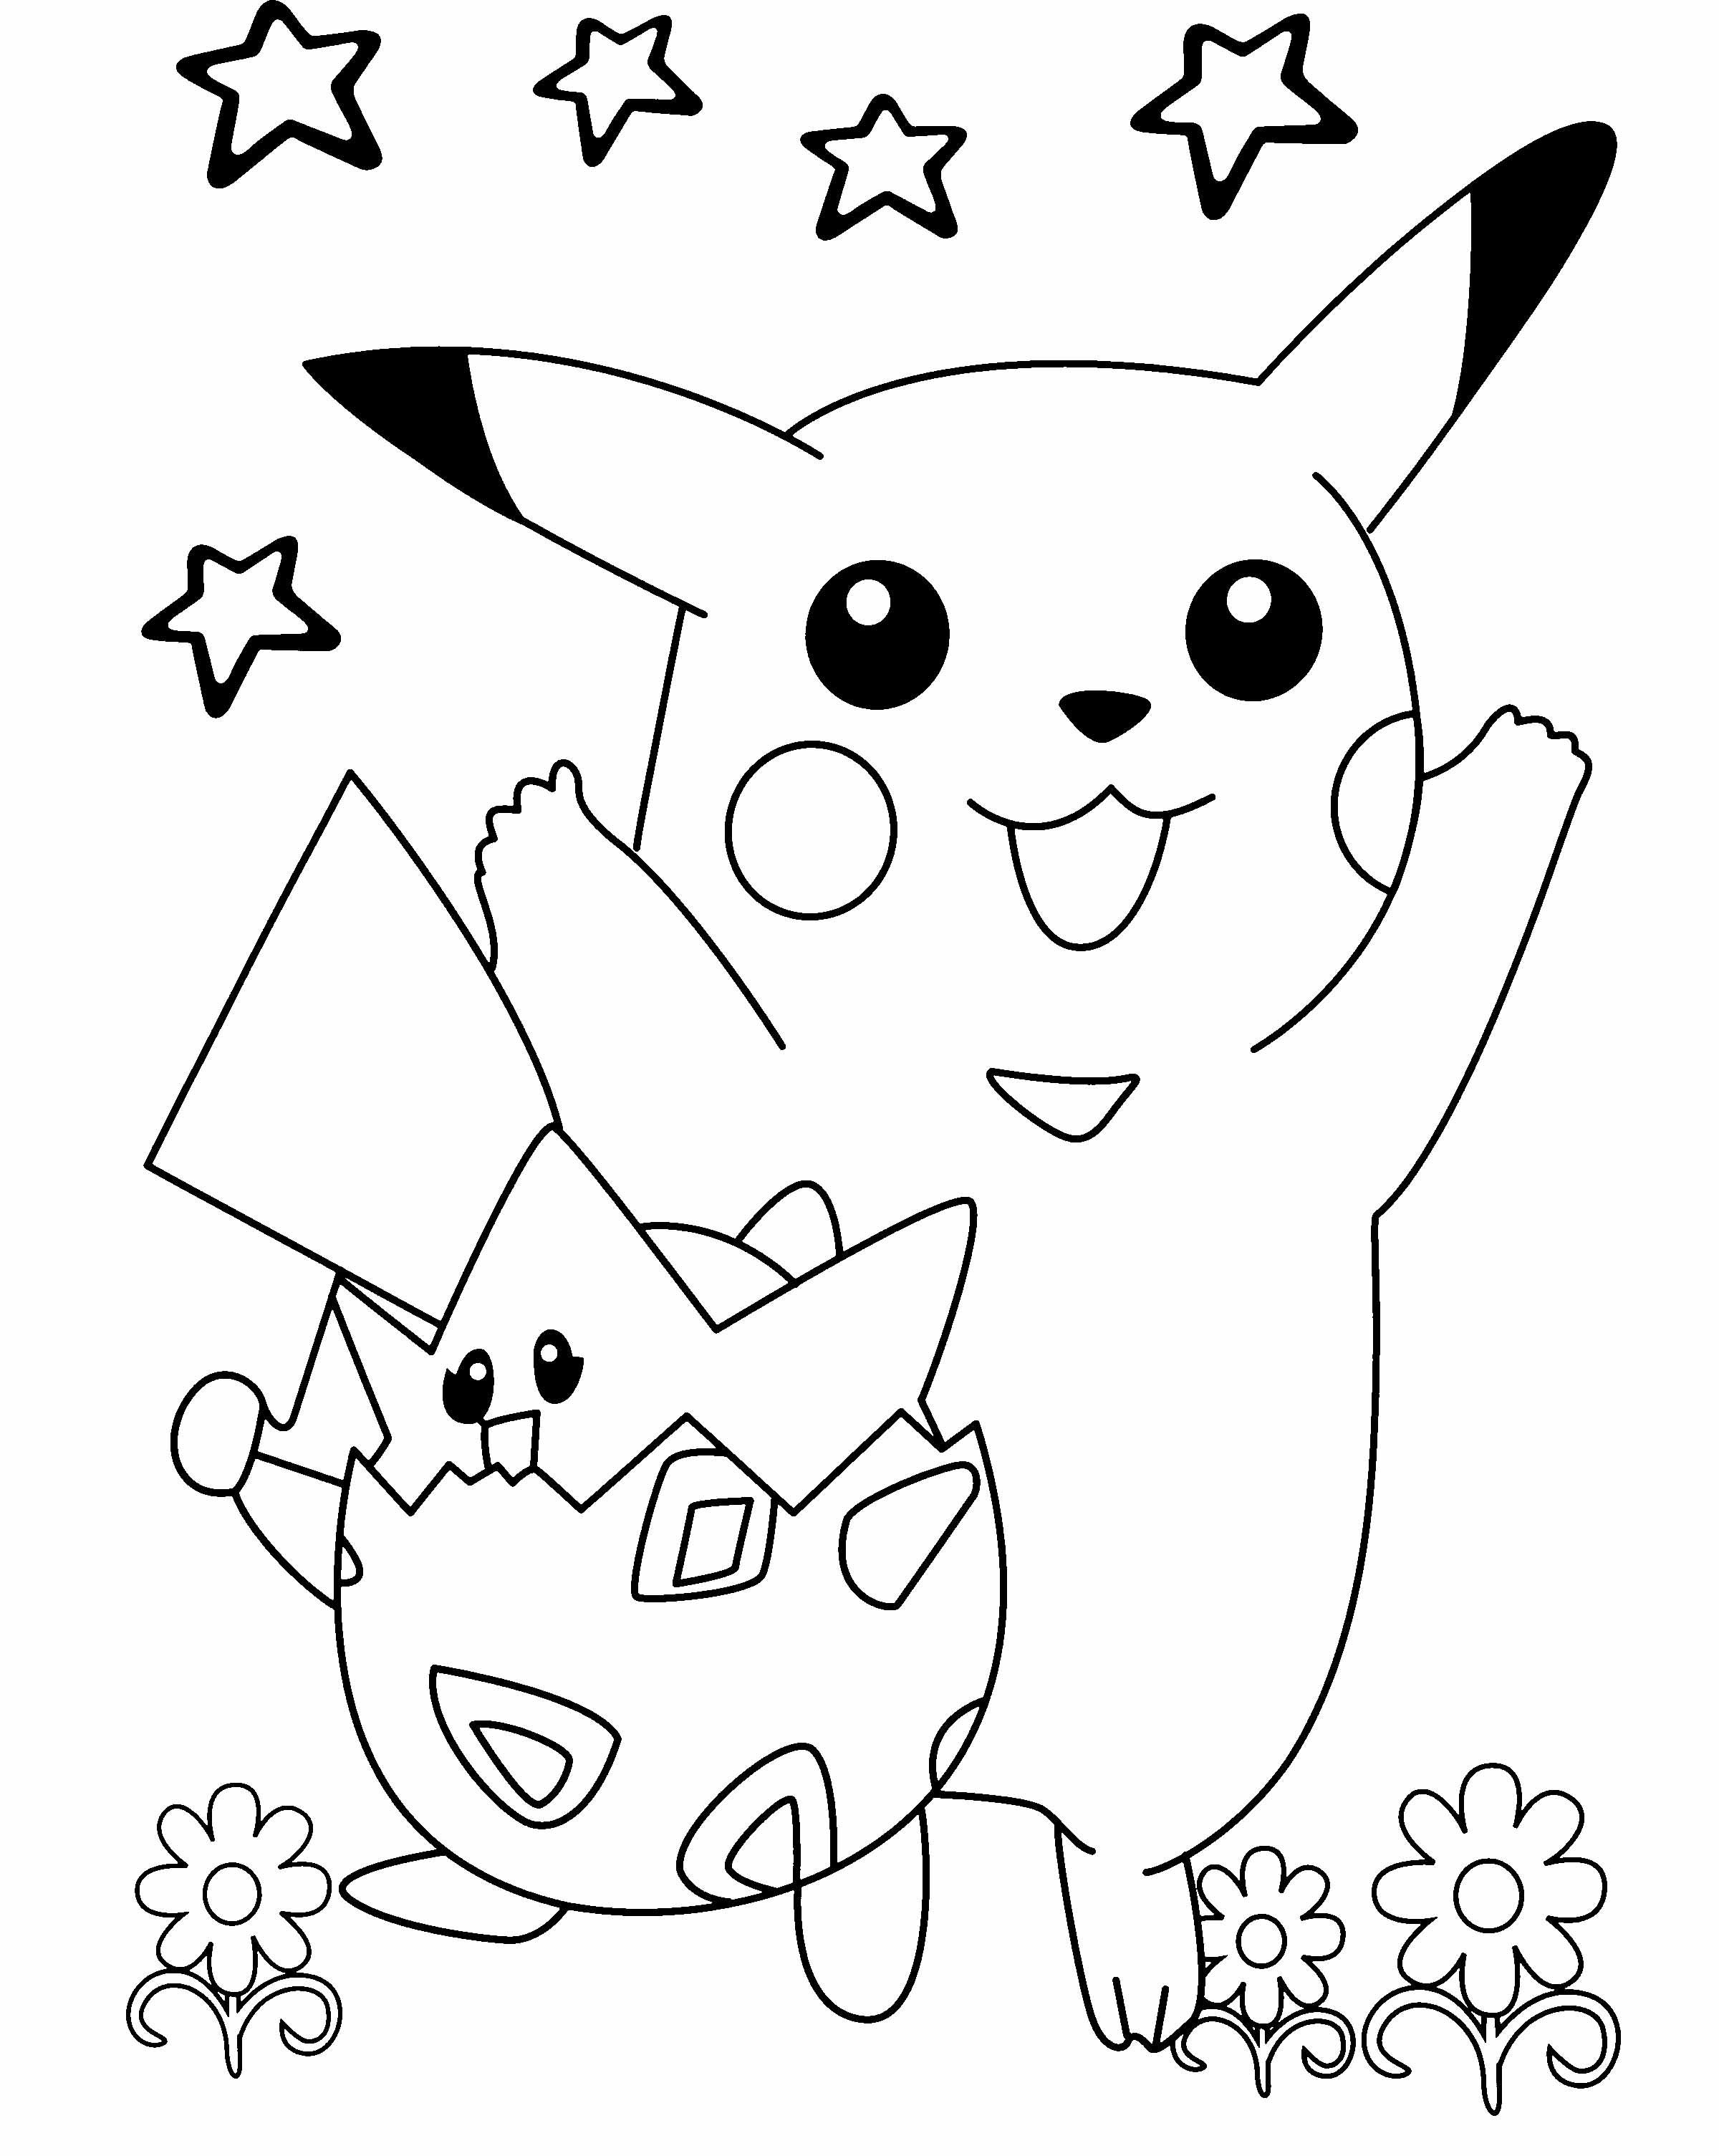 Flower garden coloring pages printable - Pokemon Pikachu Playing In The Flower Garden Coloring Page